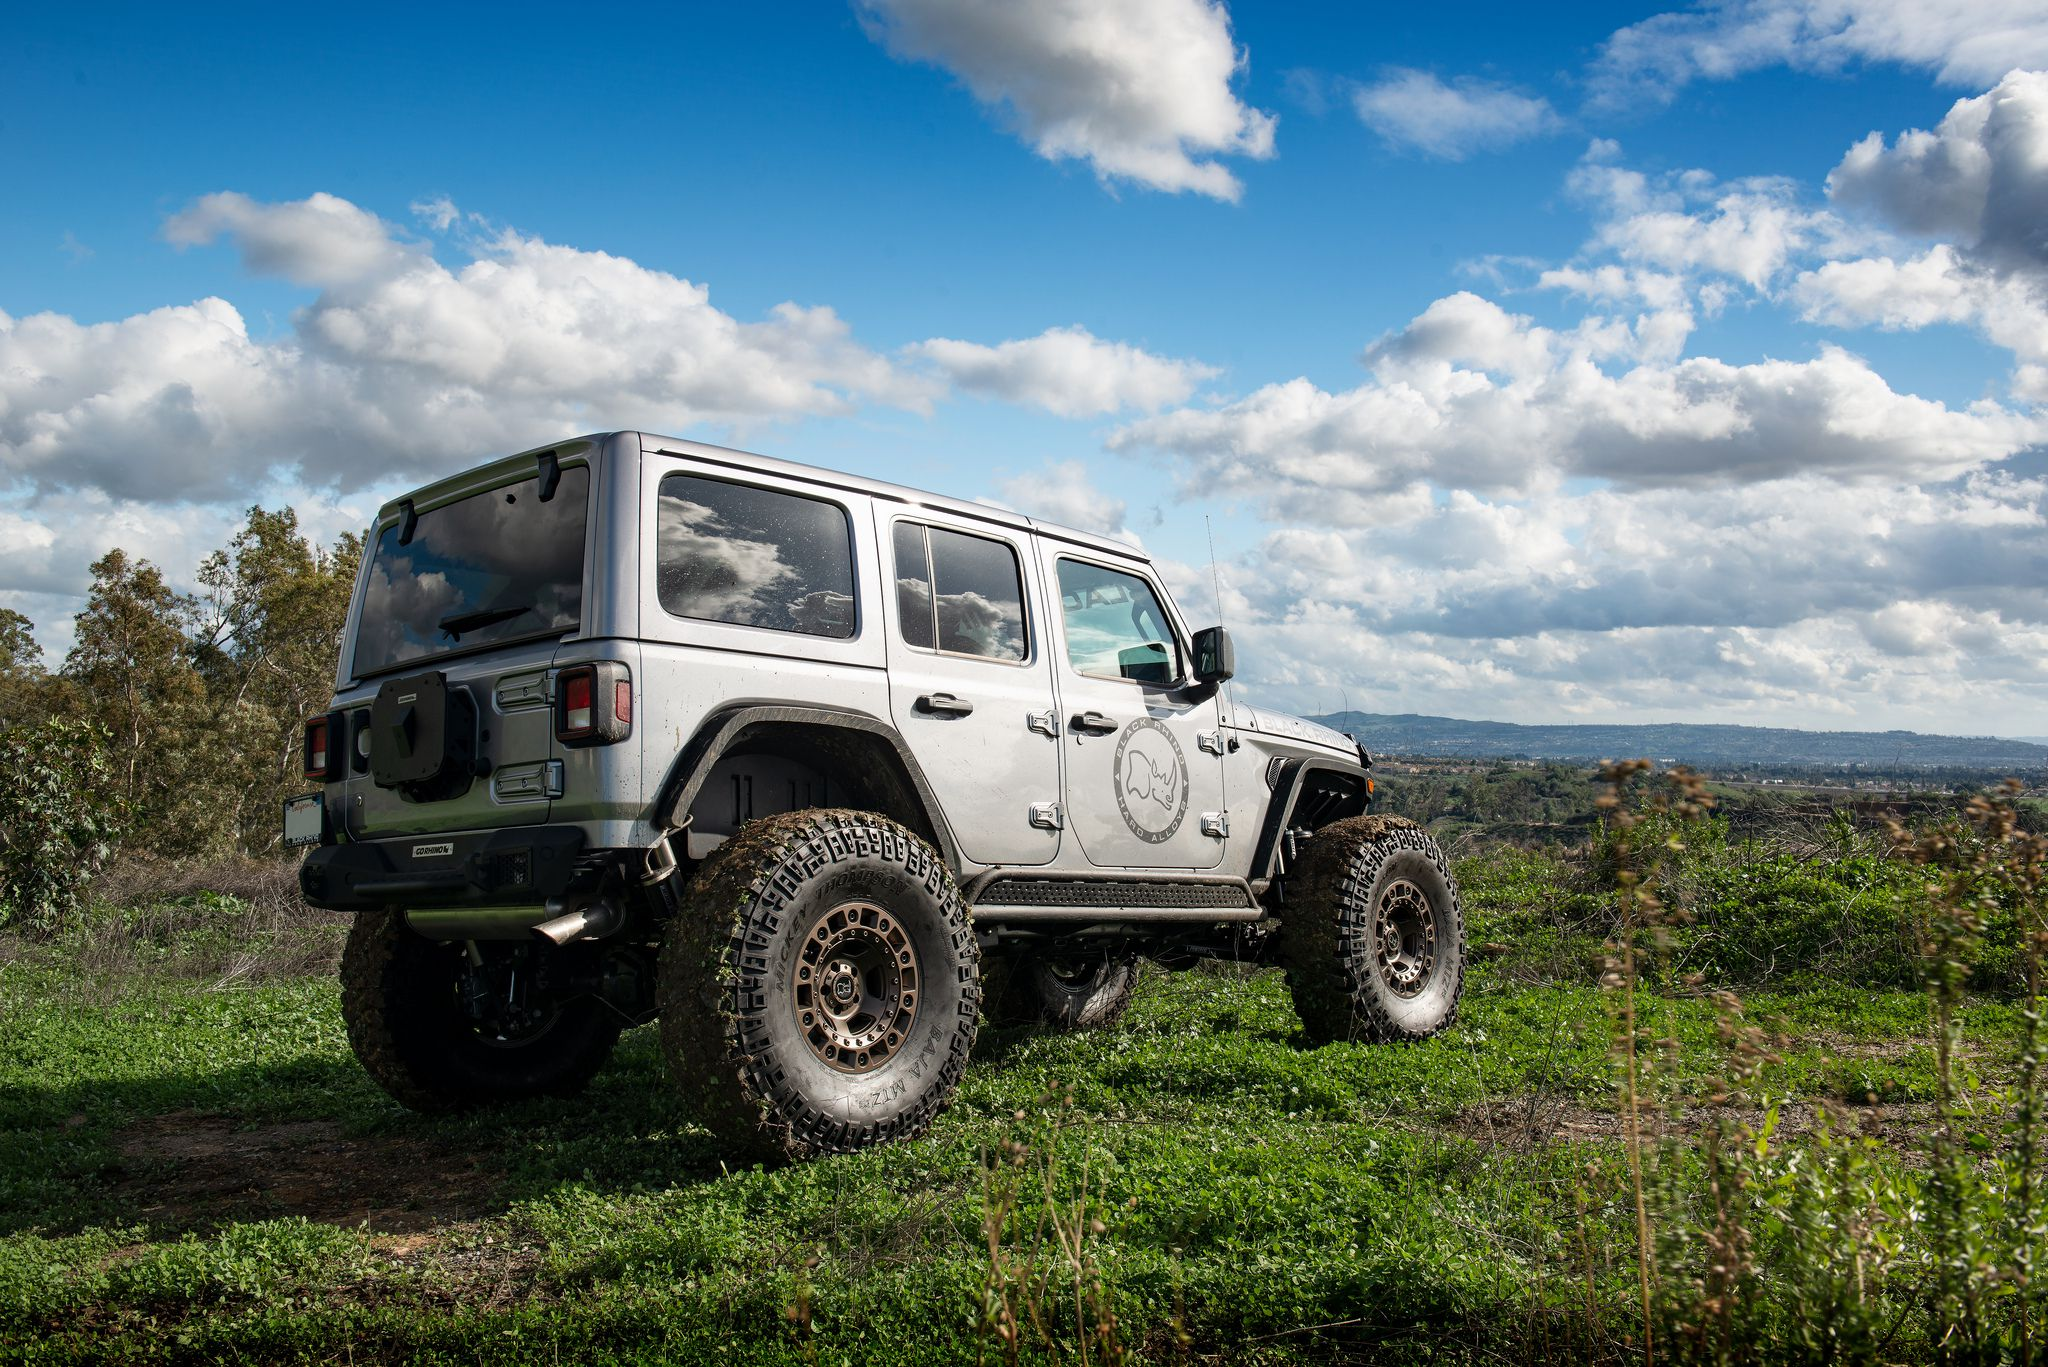 Jeep Wrangler JLU Rubicon - Gray SUV at Offroad